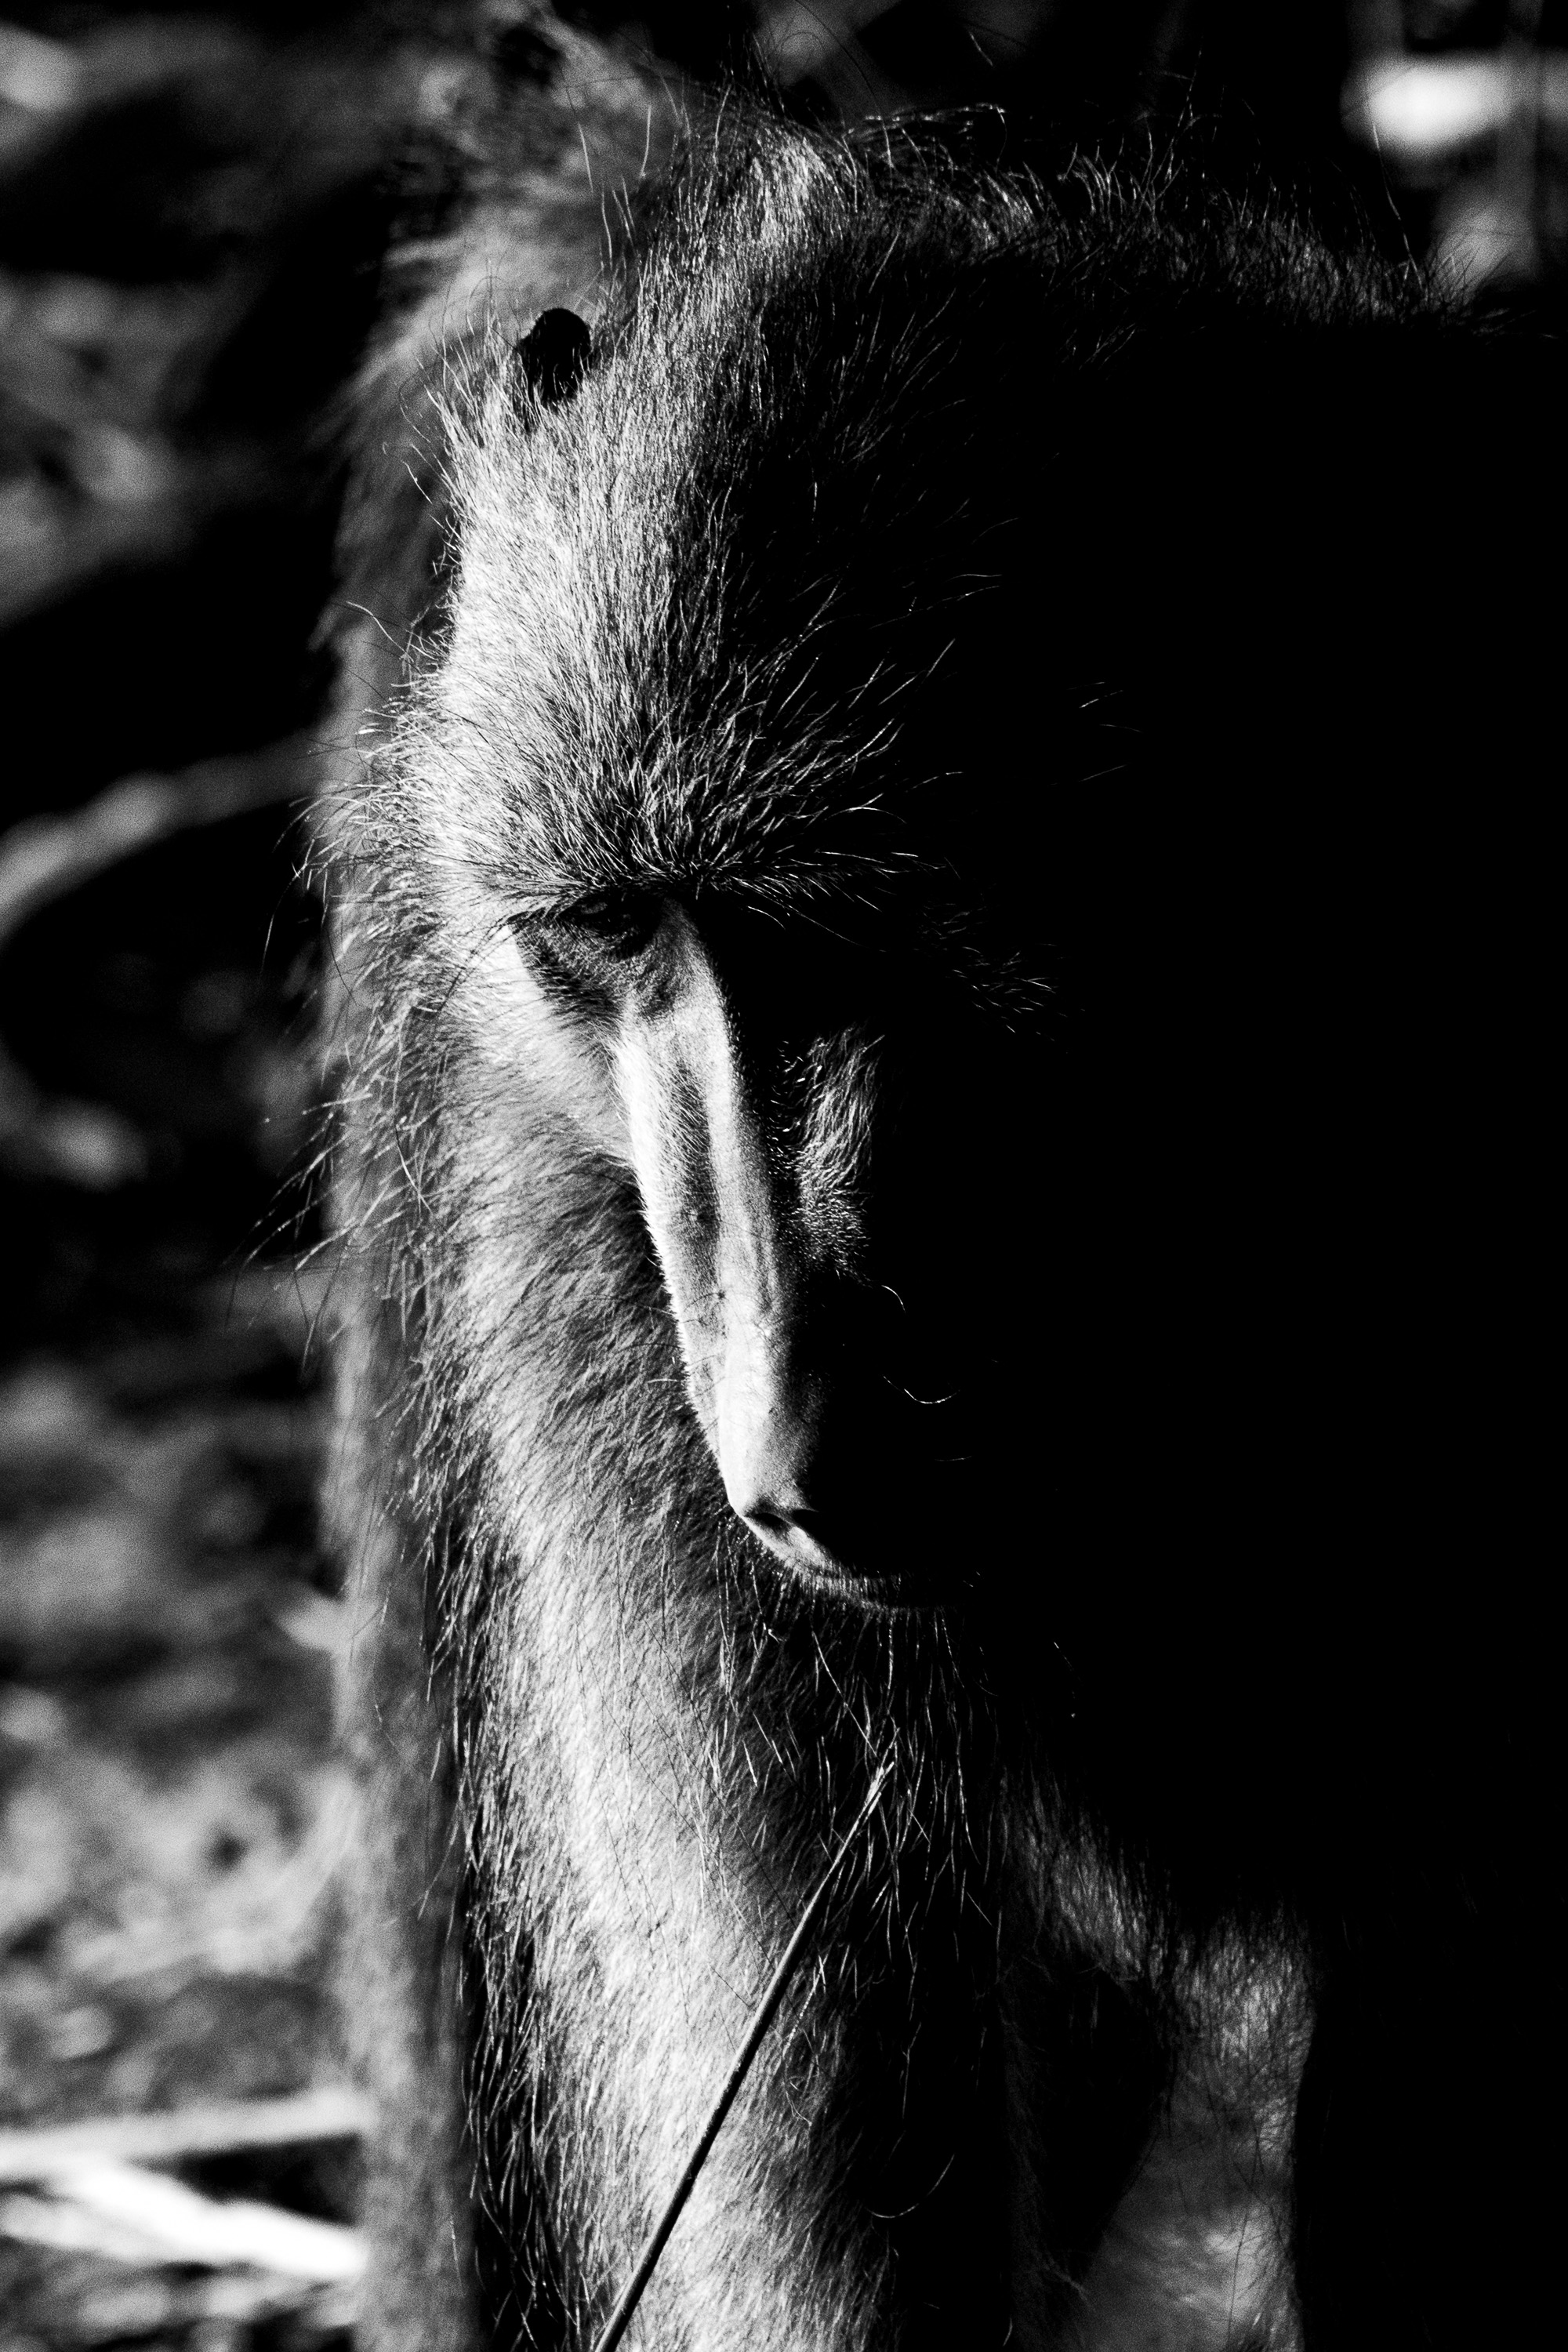 Baboon in black and white